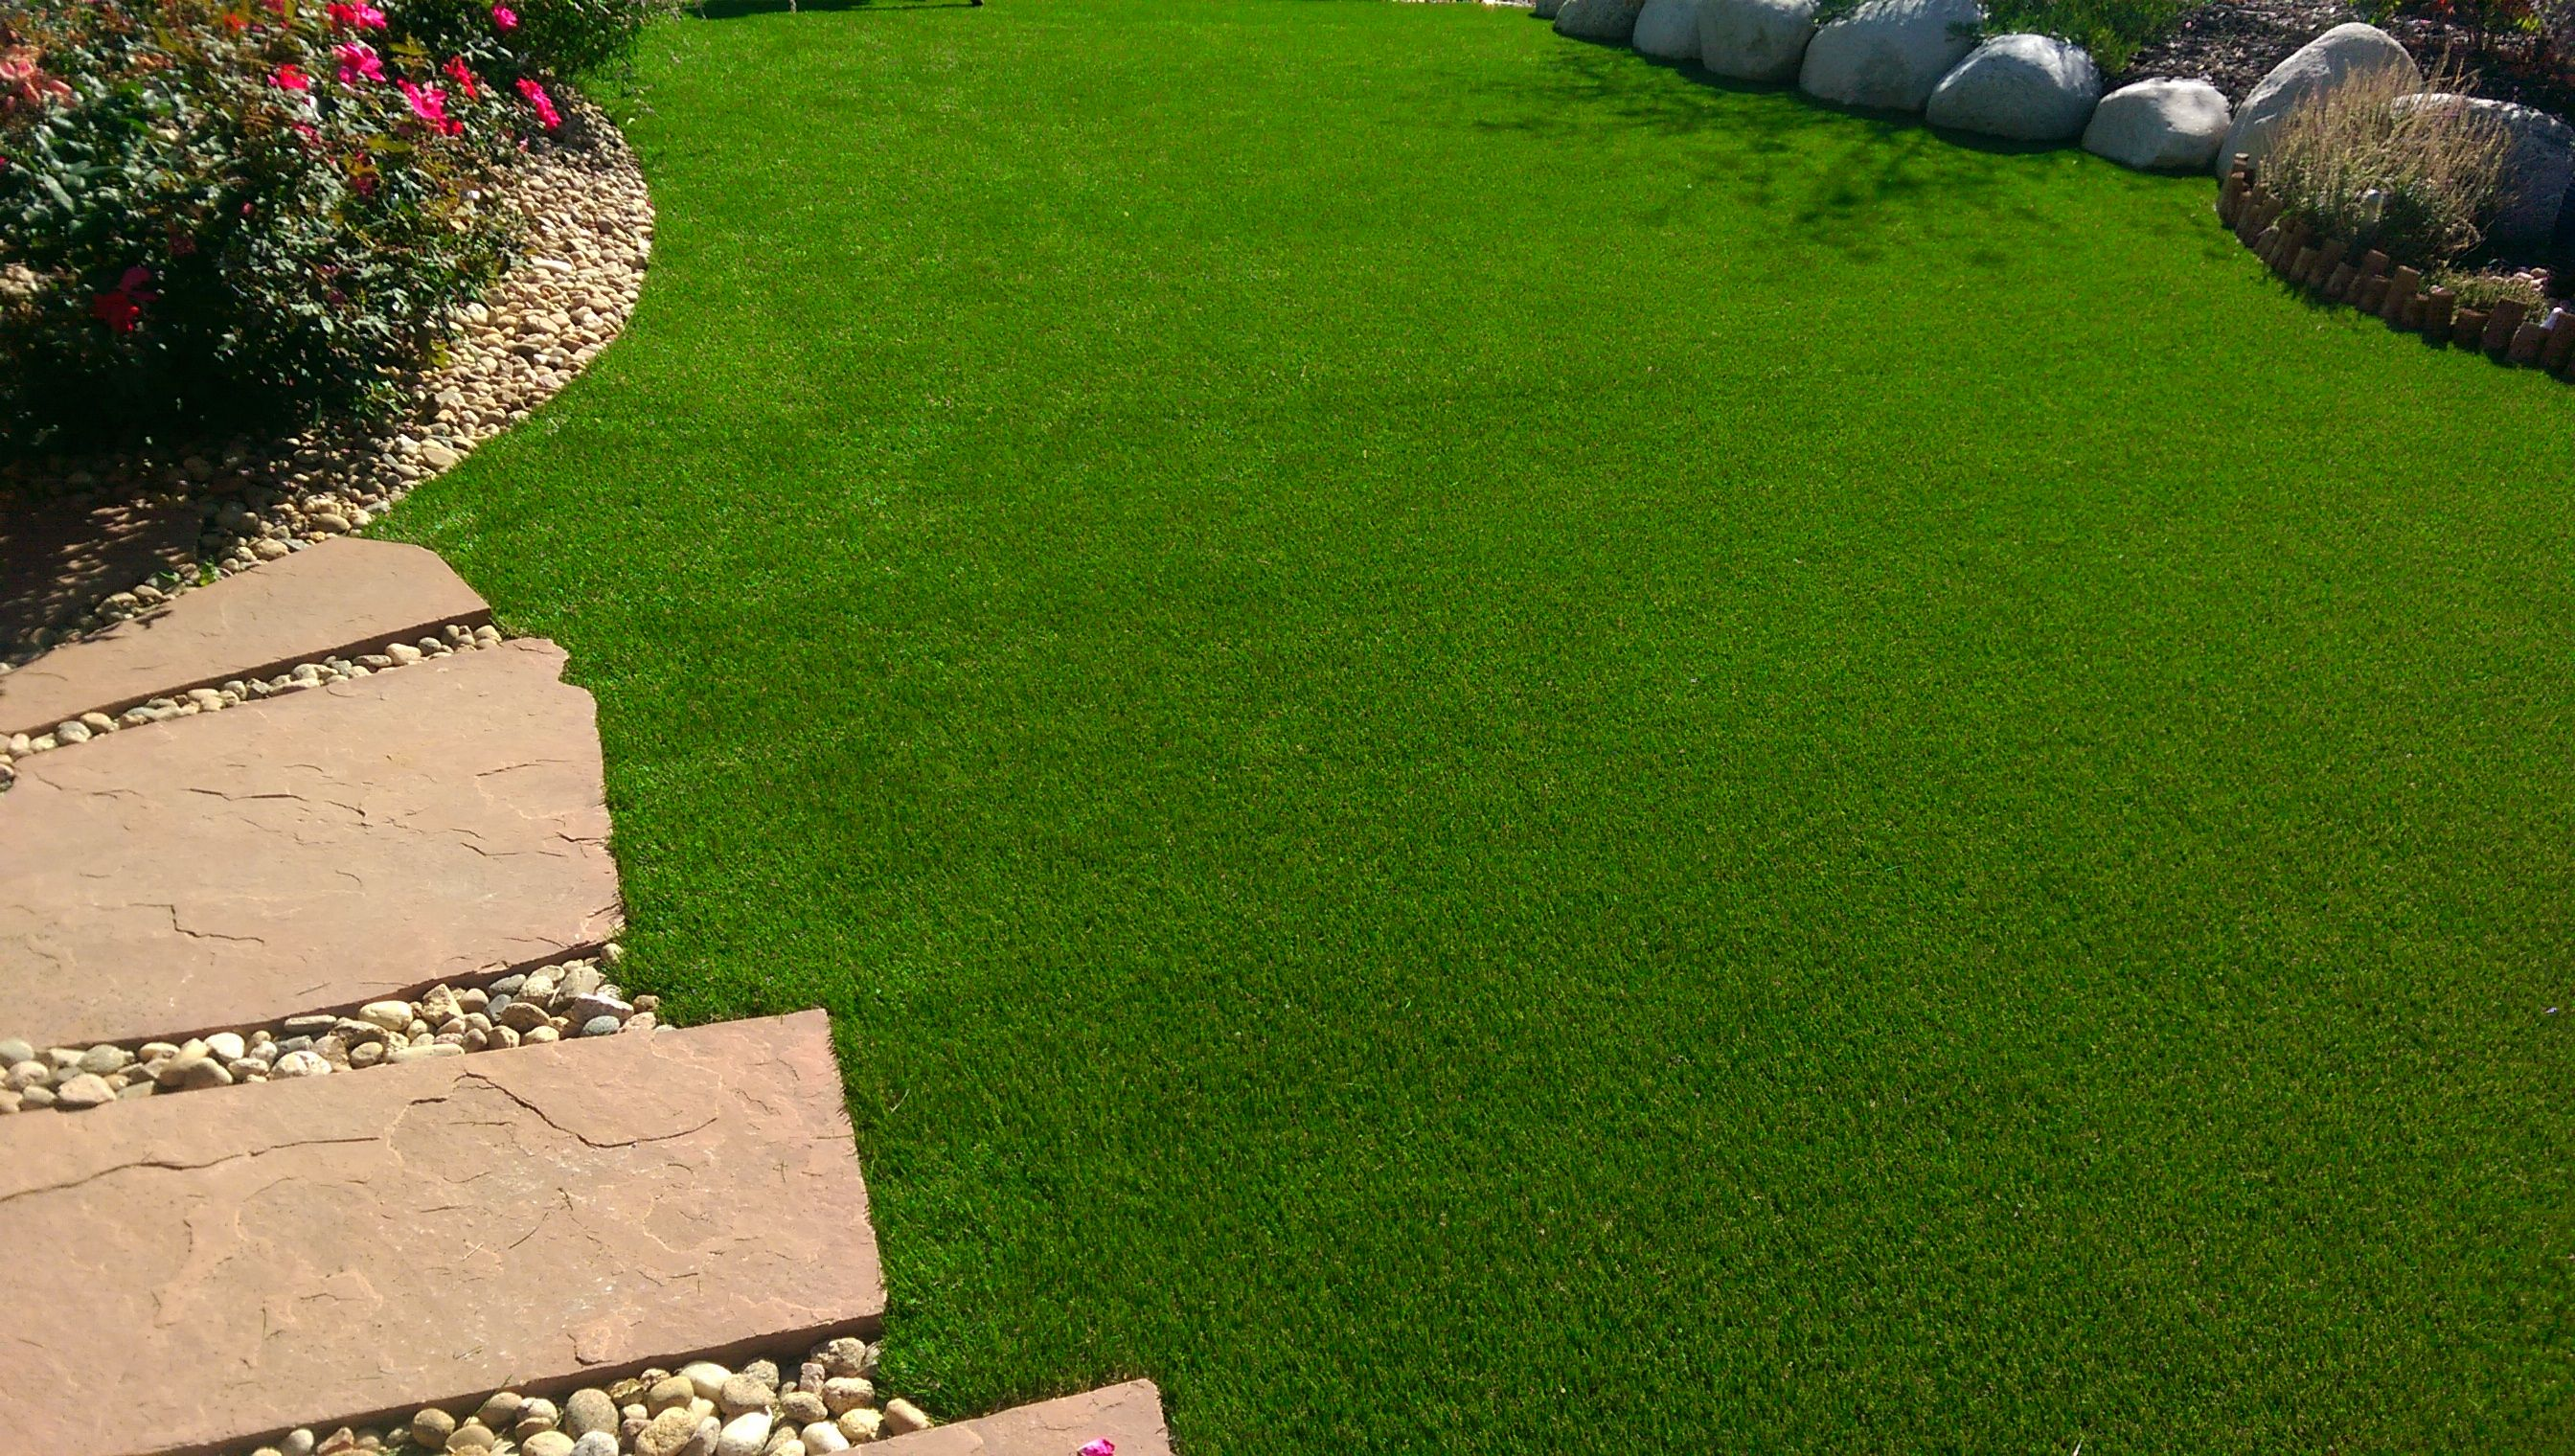 Artificial turf pros and cons - Artificial Turf Lawn With Rock And Flagstone Borders